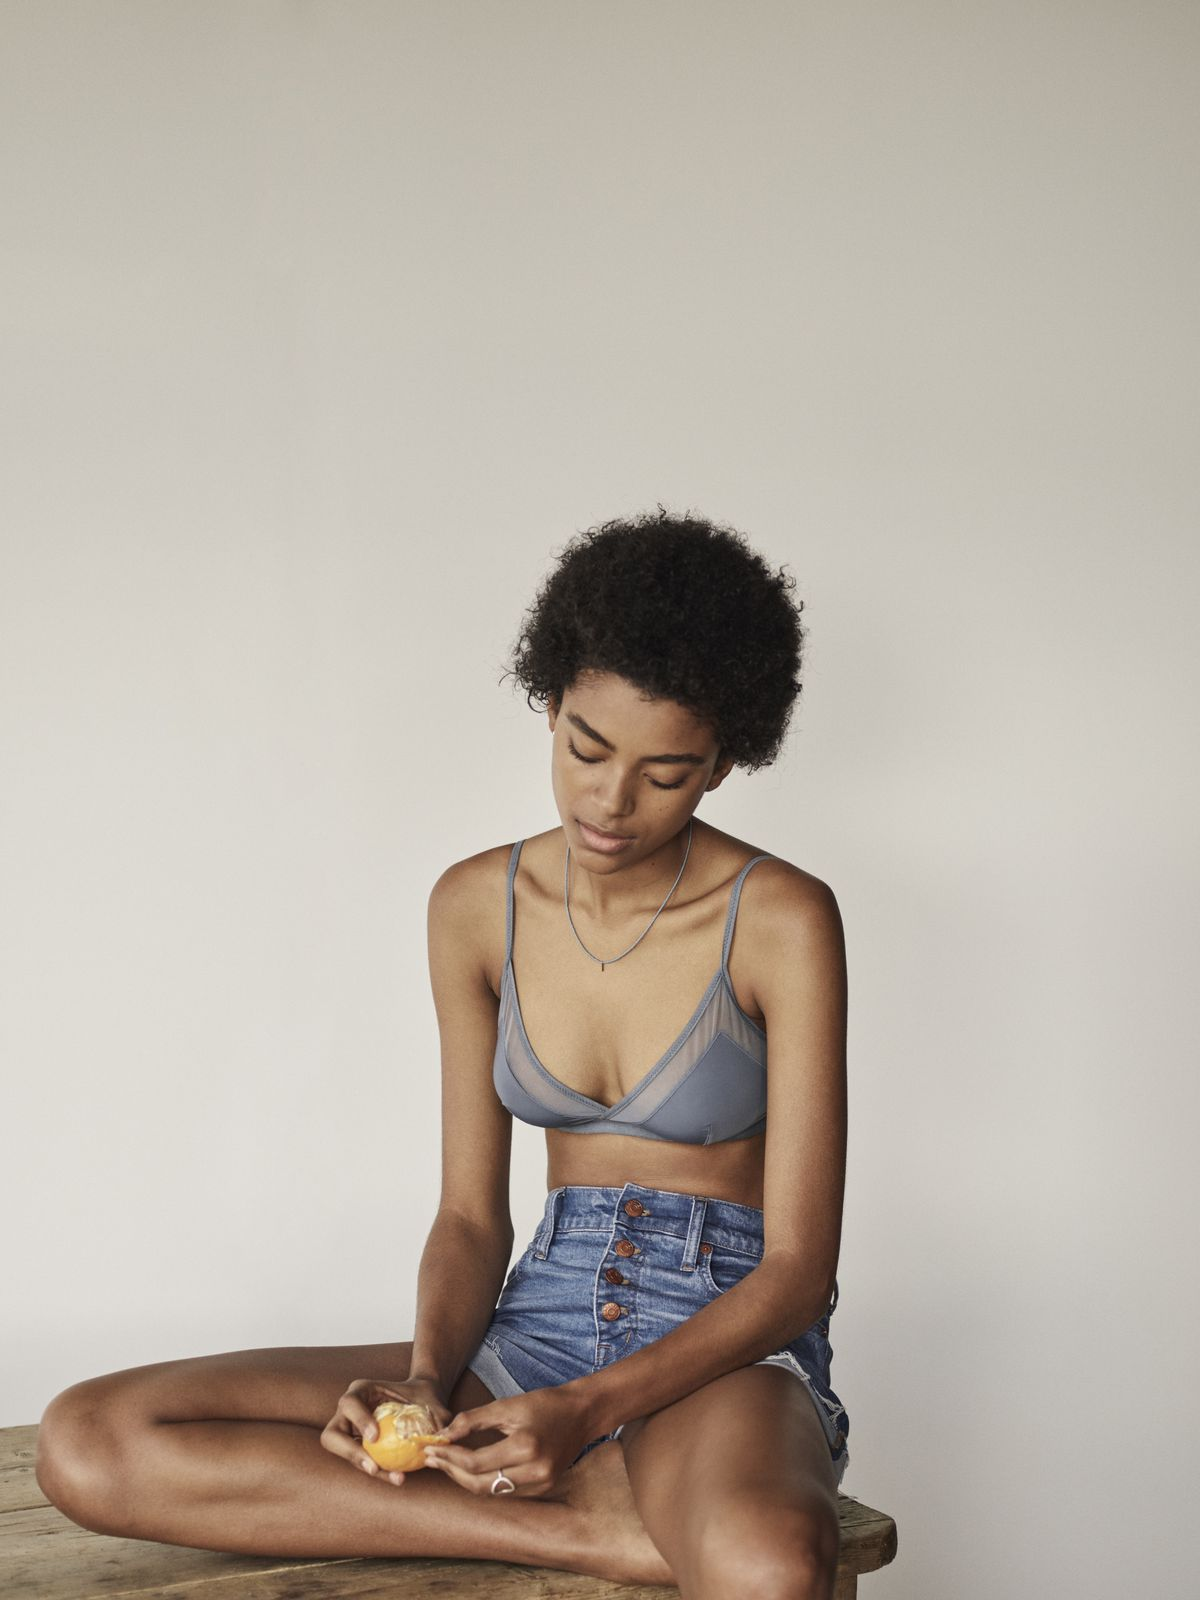 Madewell Launches a Lingerie Line: Madewell Intimates picture